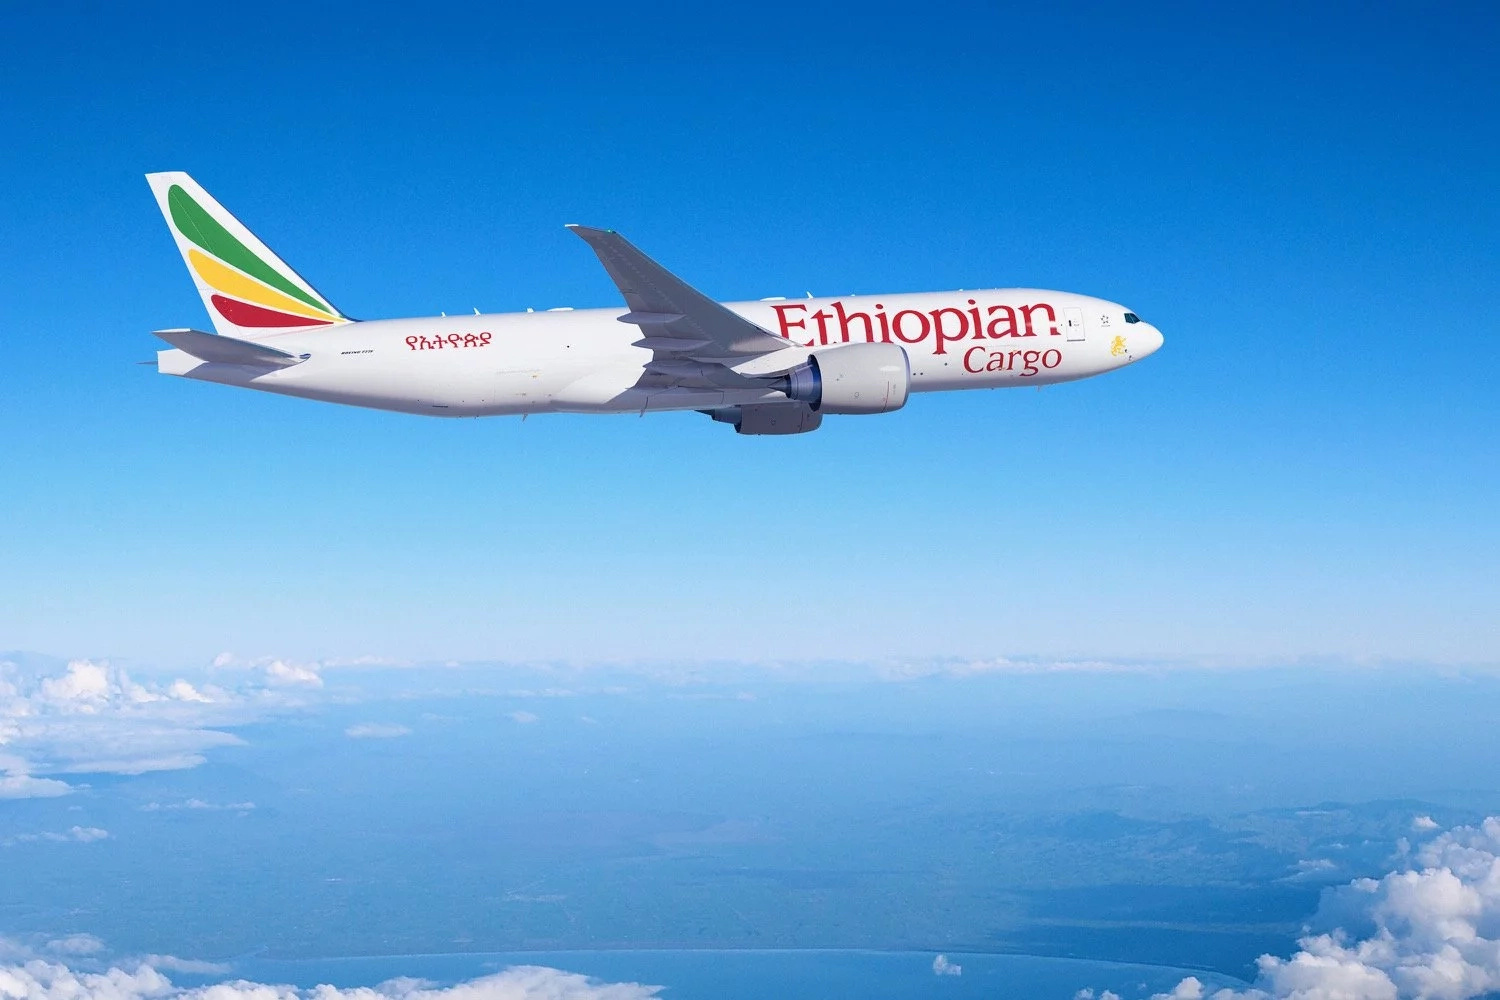 Ethiopian Airlines and Boeing announce an order for four Boeing 777 Freighters